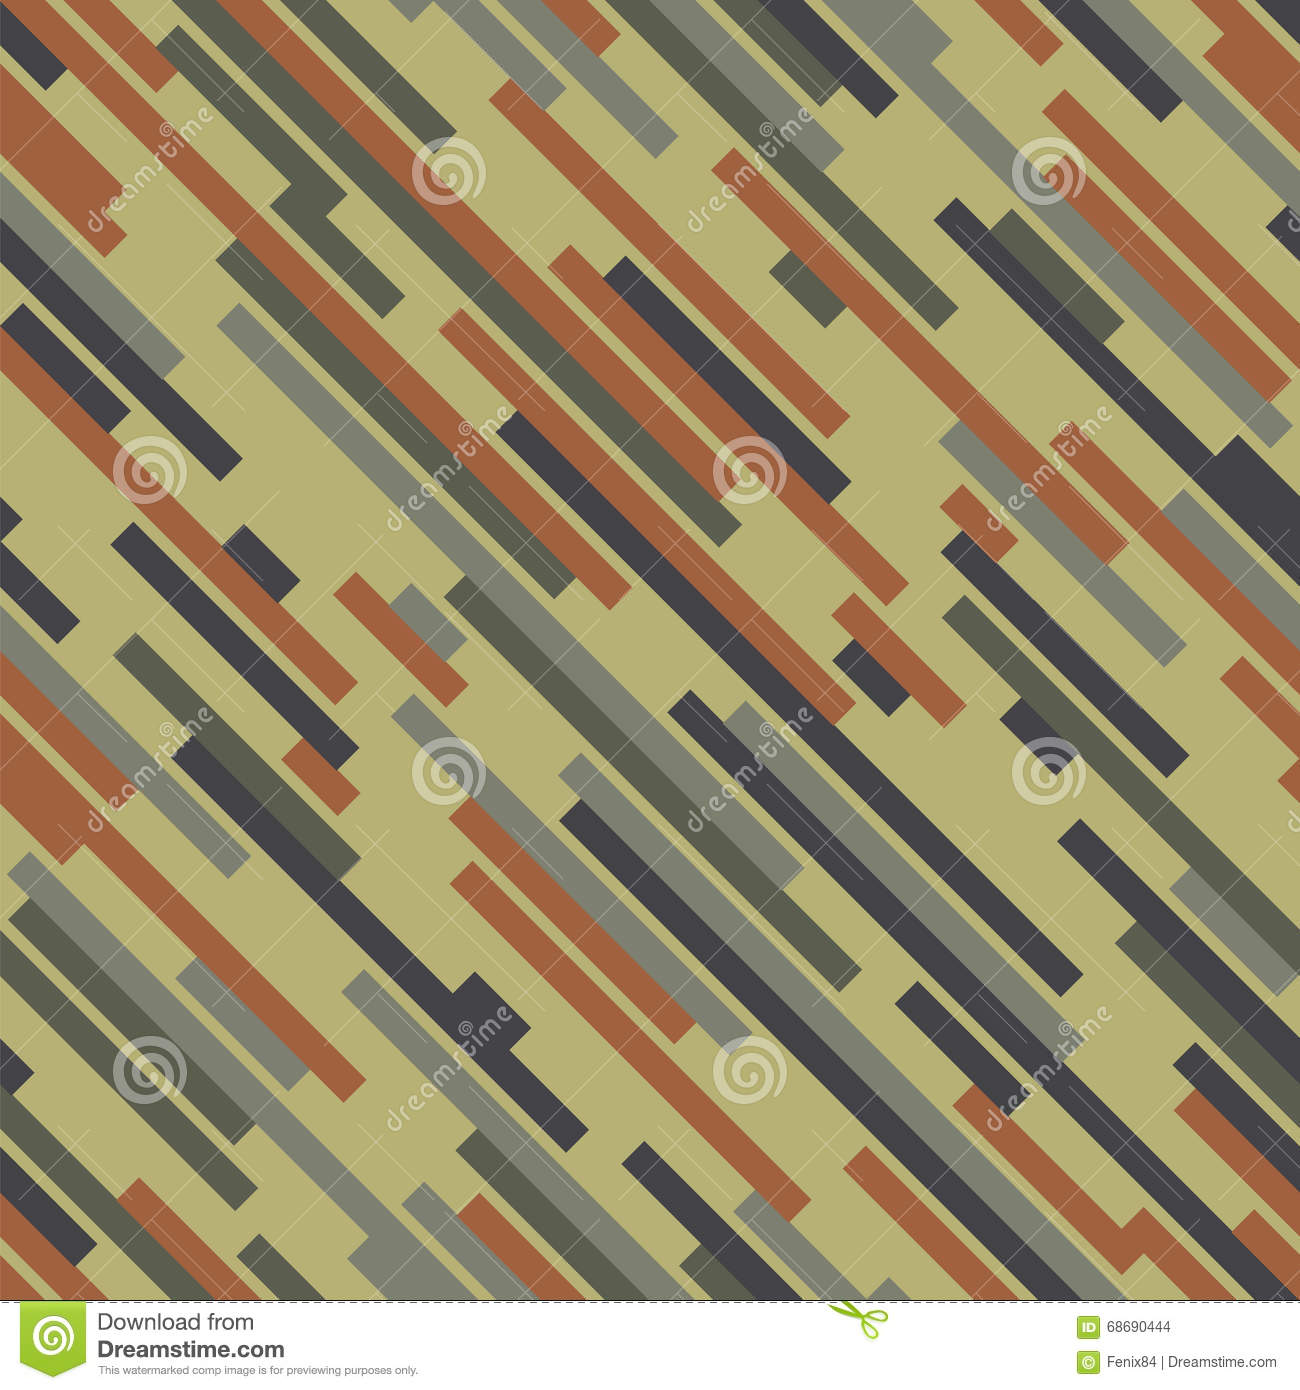 Digital camouflage. Wood color. Seamless vector pattern.